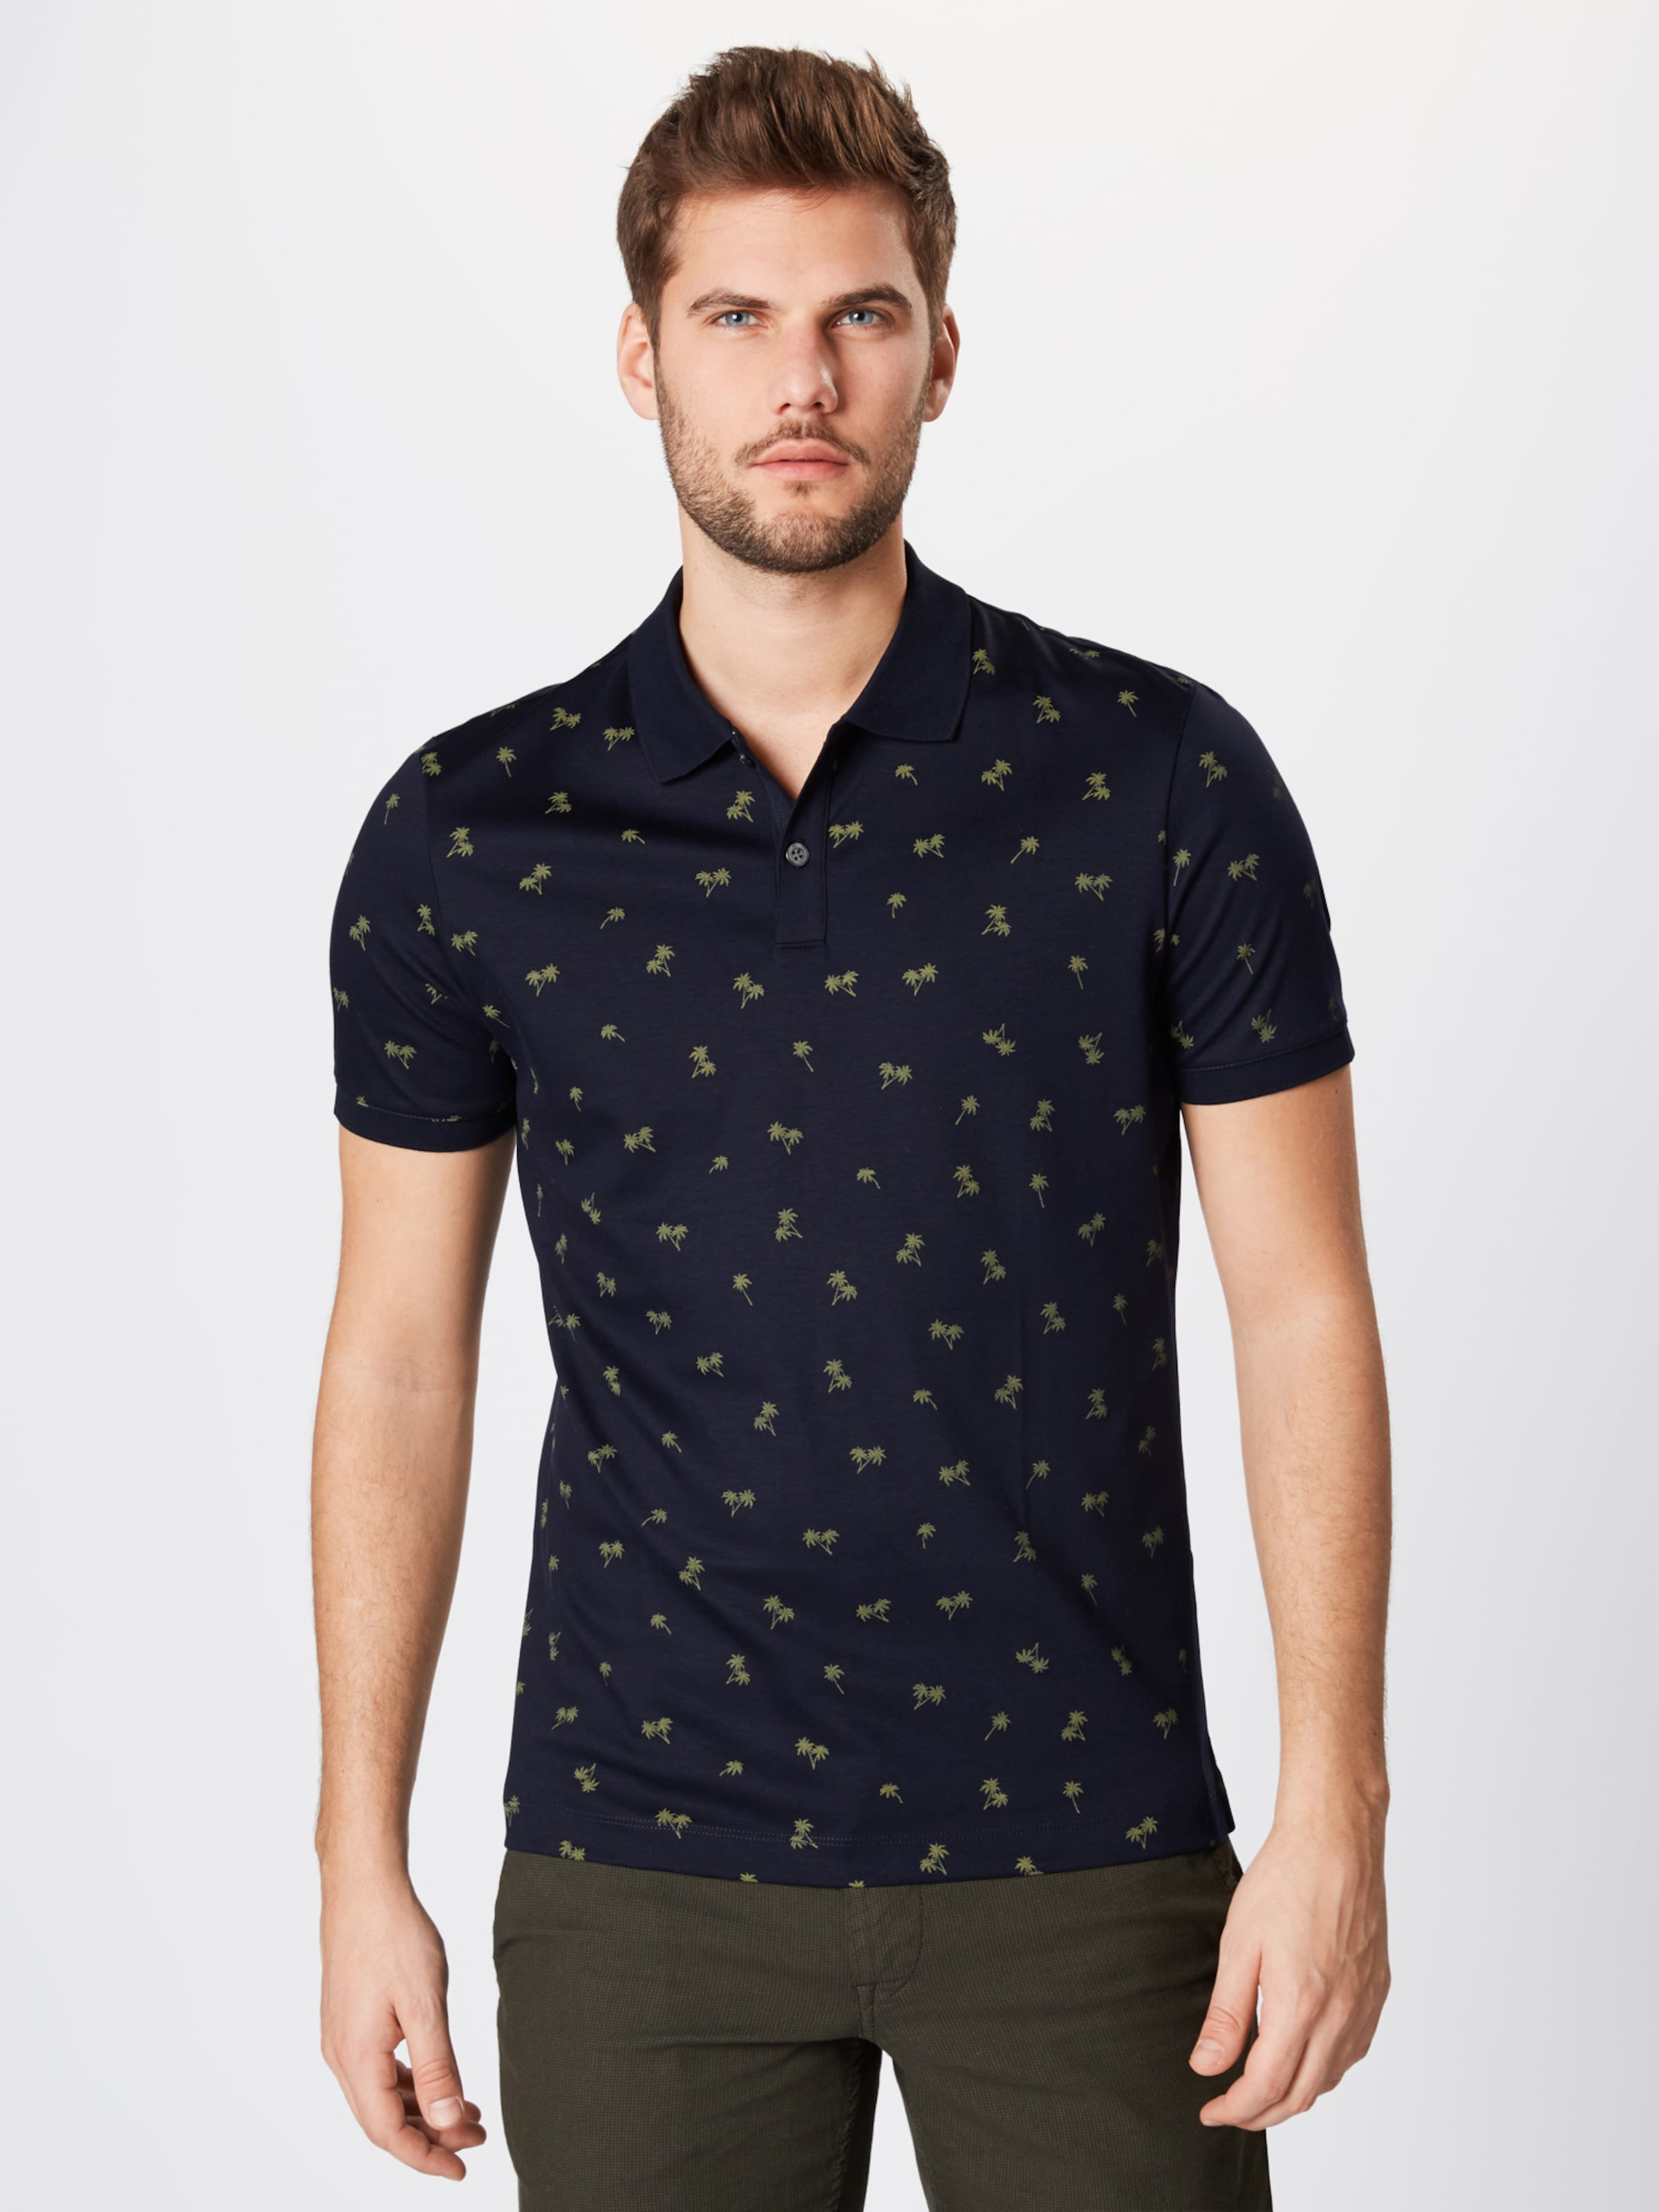 In Geo Banana Poloshirt Navy Republic Polo' Palm 'lux 8nOPk0Xw